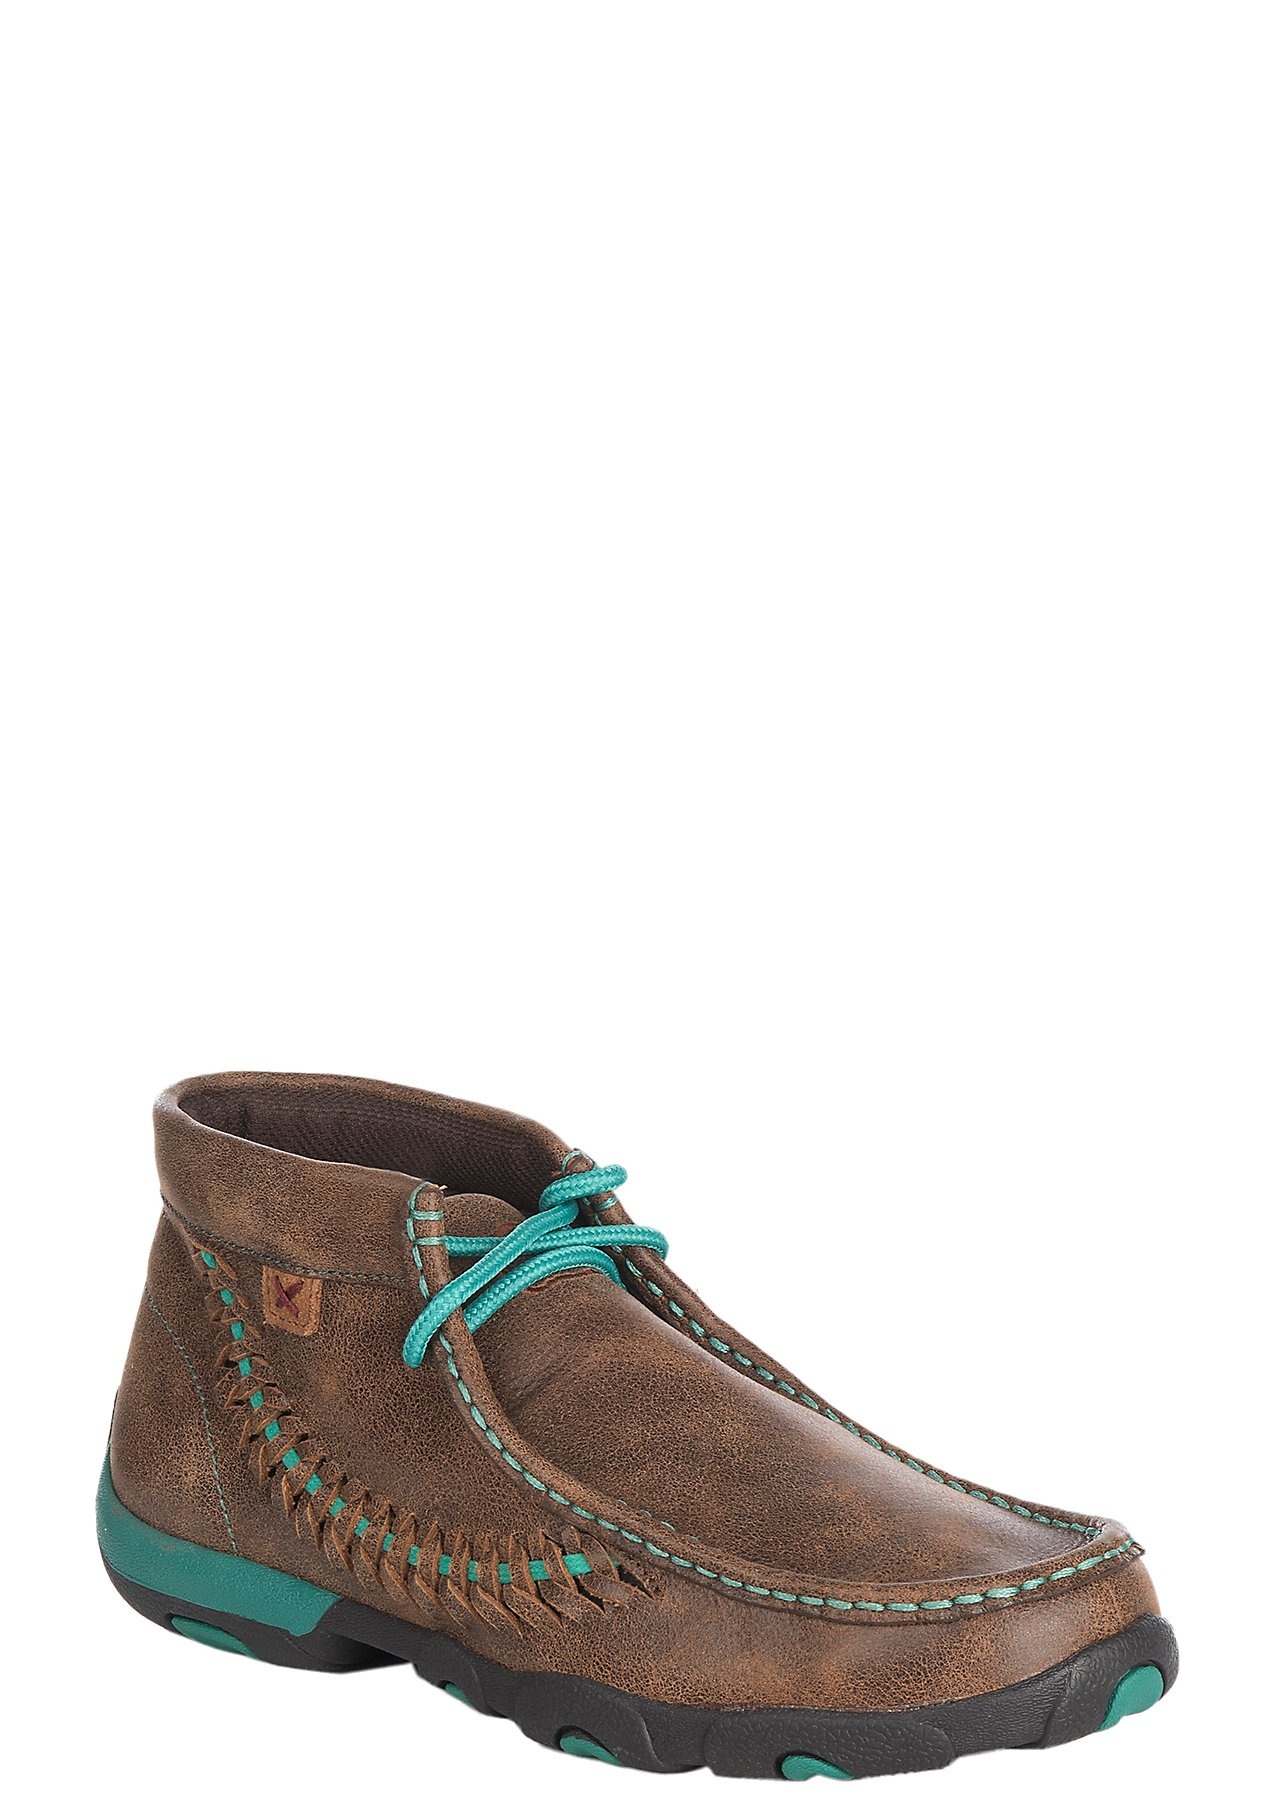 Twisted X Boots · Twisted X Women's Brown w/ Turquoise Driving Moccasin  Casual Shoes